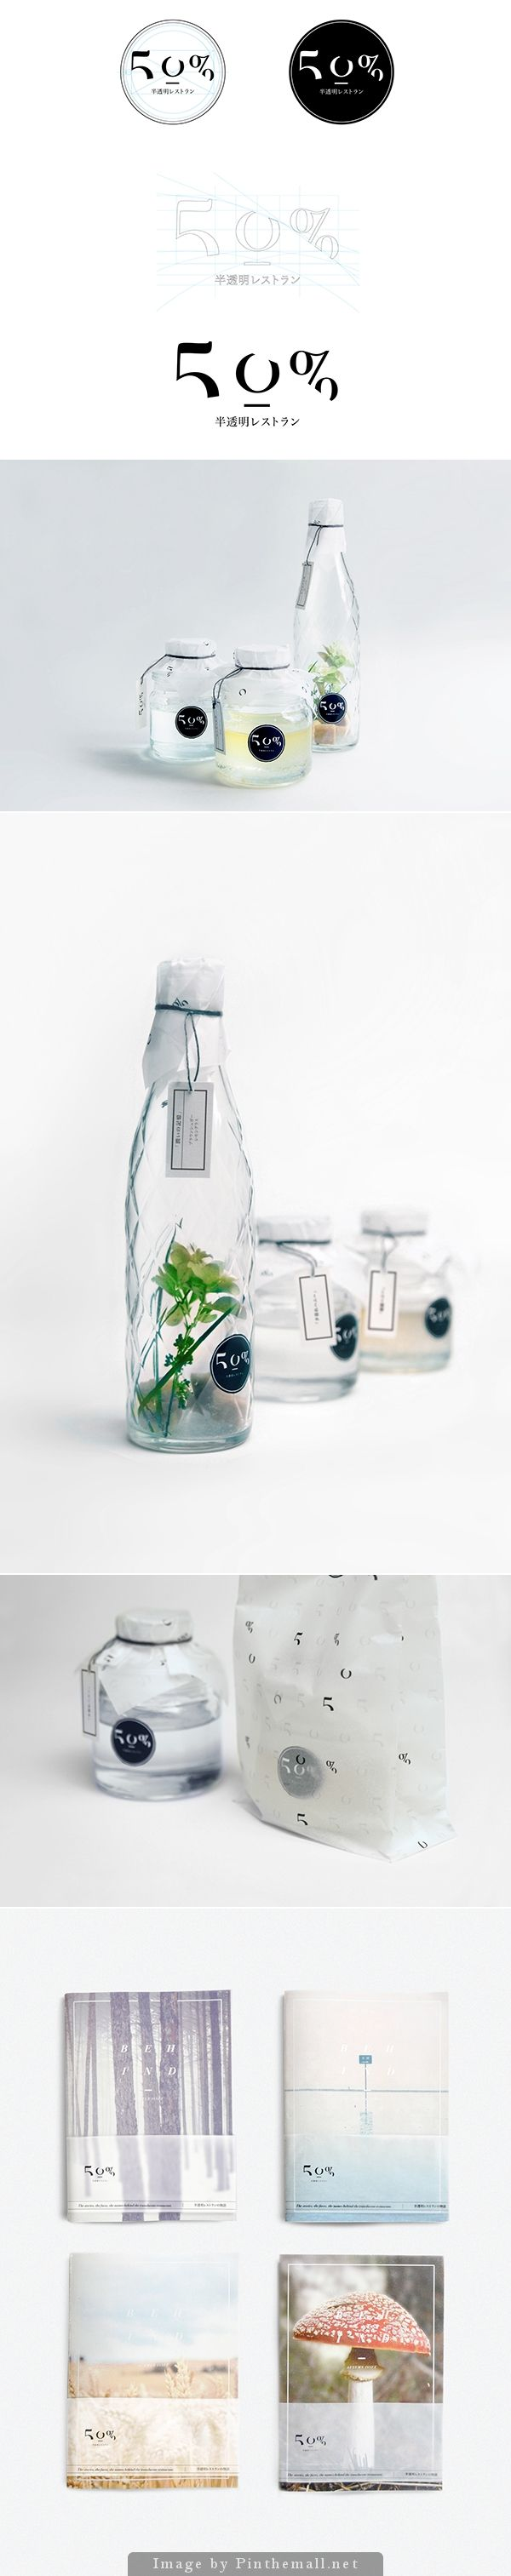 50%, a translucent restaurant by Matteo Morelli #packaging #design